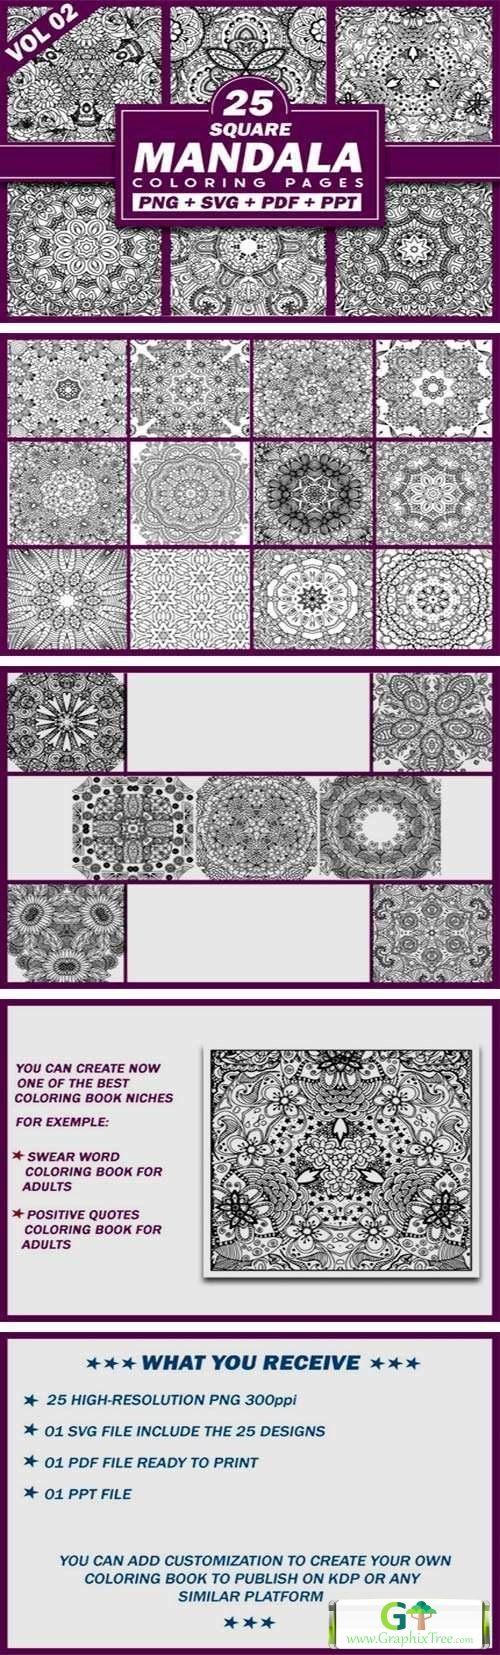 25 Square Mandala Coloring Pages | KDP